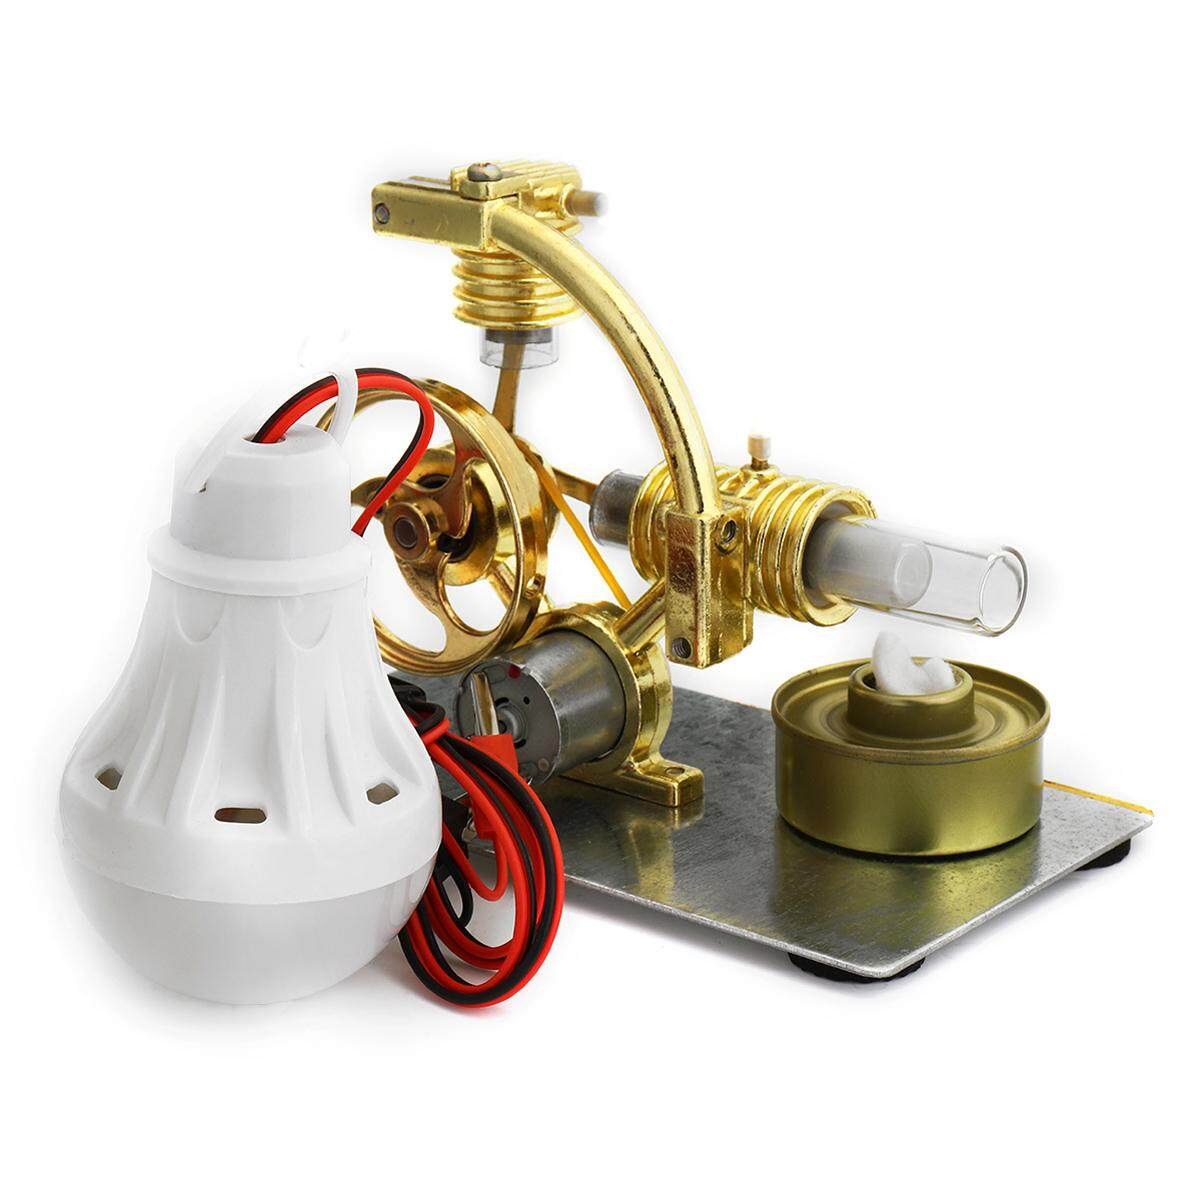 Hot Air Stirling Engine Motor Power Generator Model Educational Kit W/ Led Light By Teamwin.